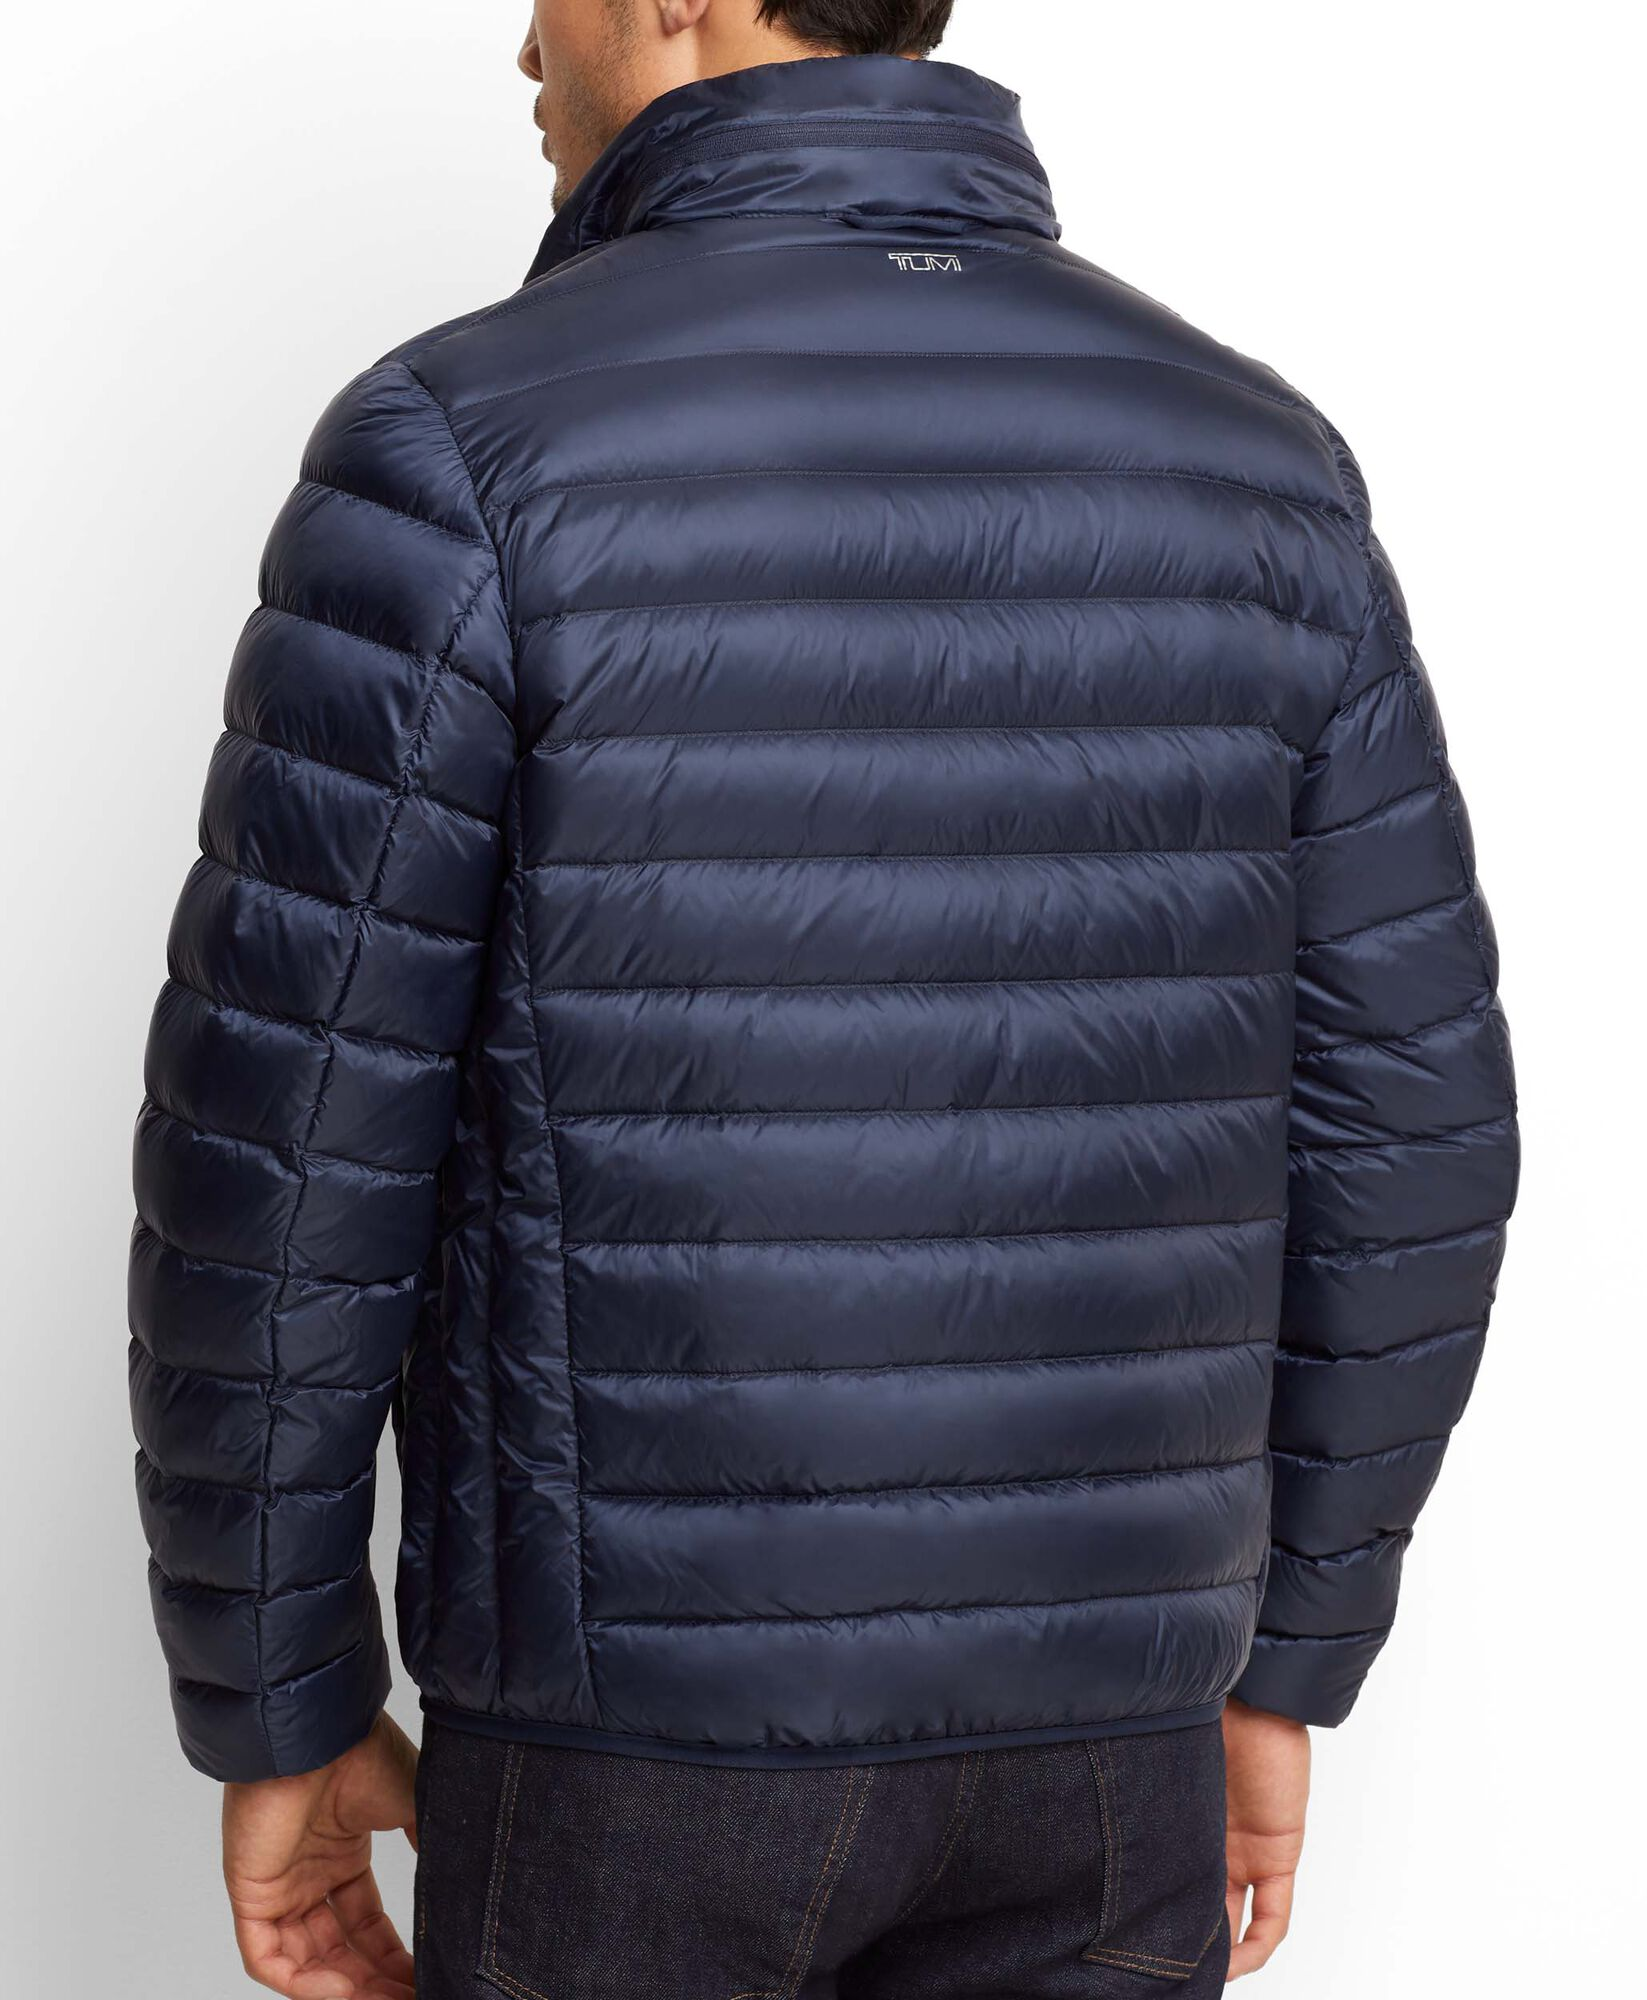 ef8ddb01a66 Patrol Packable Travel Puffer Jacket TUMIPAX Outerwear